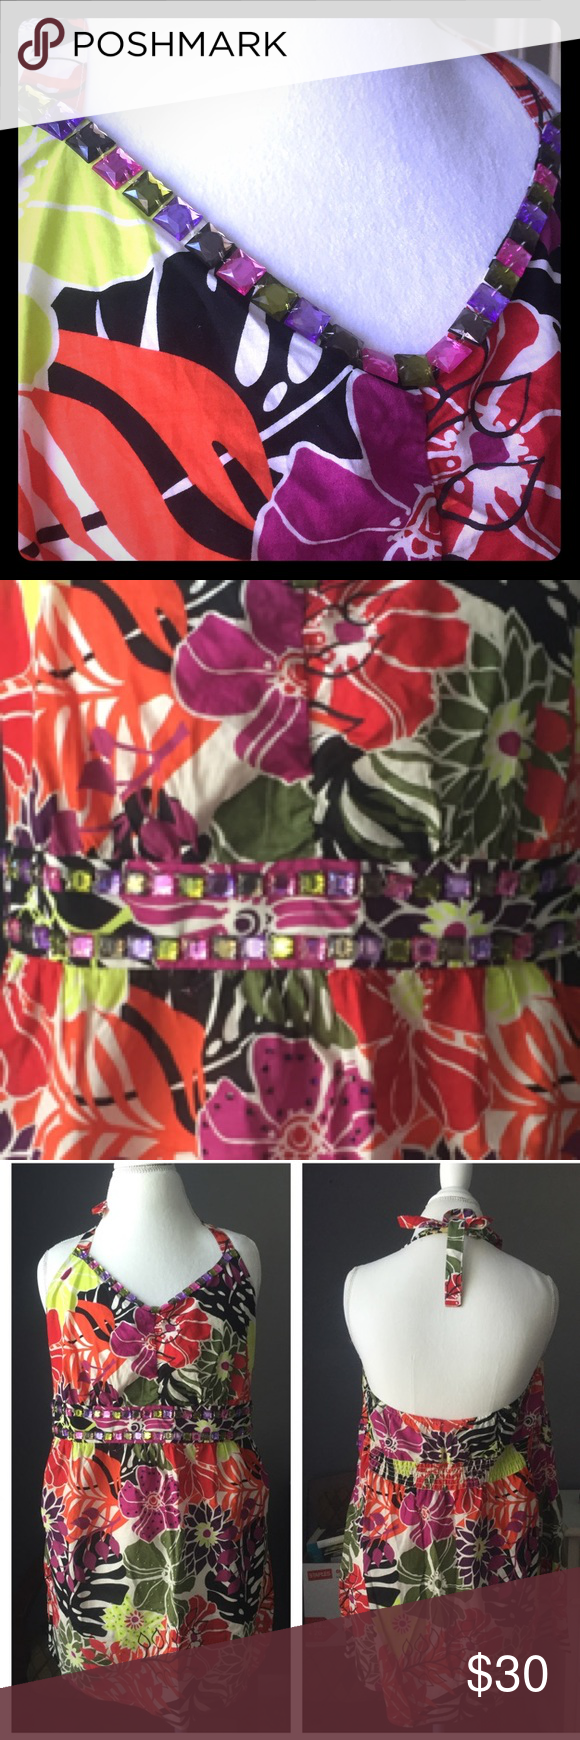 Halter Top New with Tags, Beautiful multi colored brights for this Halter top.  Ties around back of neck. Has multiple colored rhinestones in V-neck and around waistline.  Never worn. No holes, or tears. Lane Bryant Tops Crop Tops